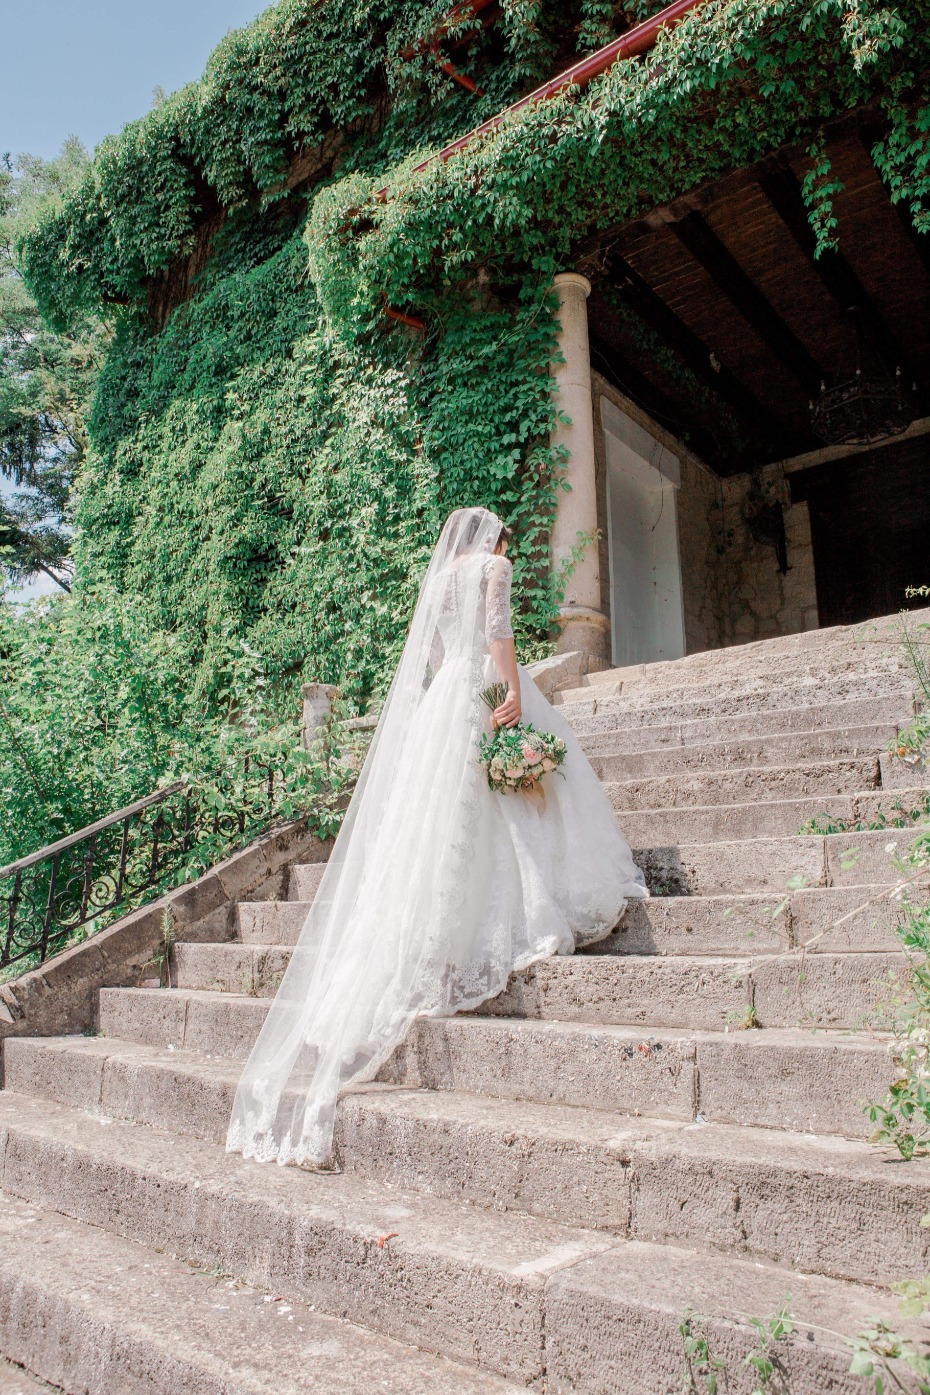 Bride ascending steps into ceremony